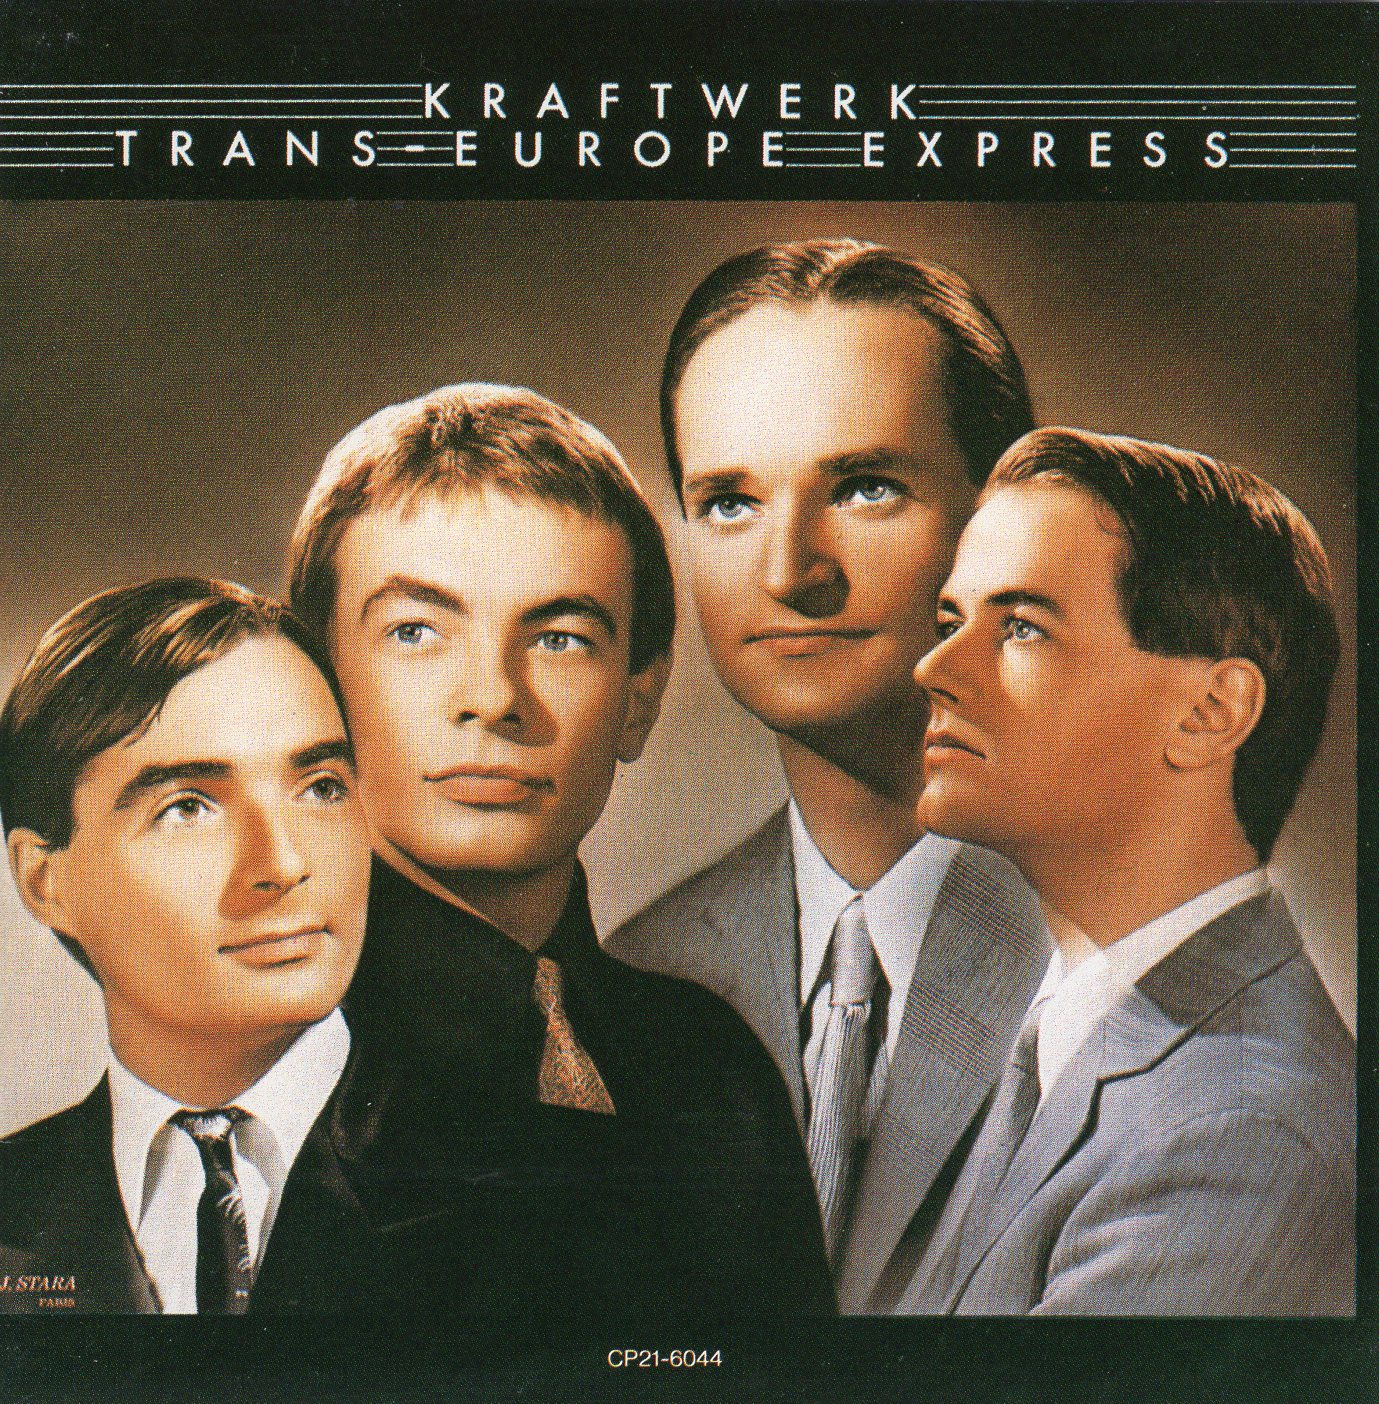 """Trans・Europe・Express"" Kraftwerk"